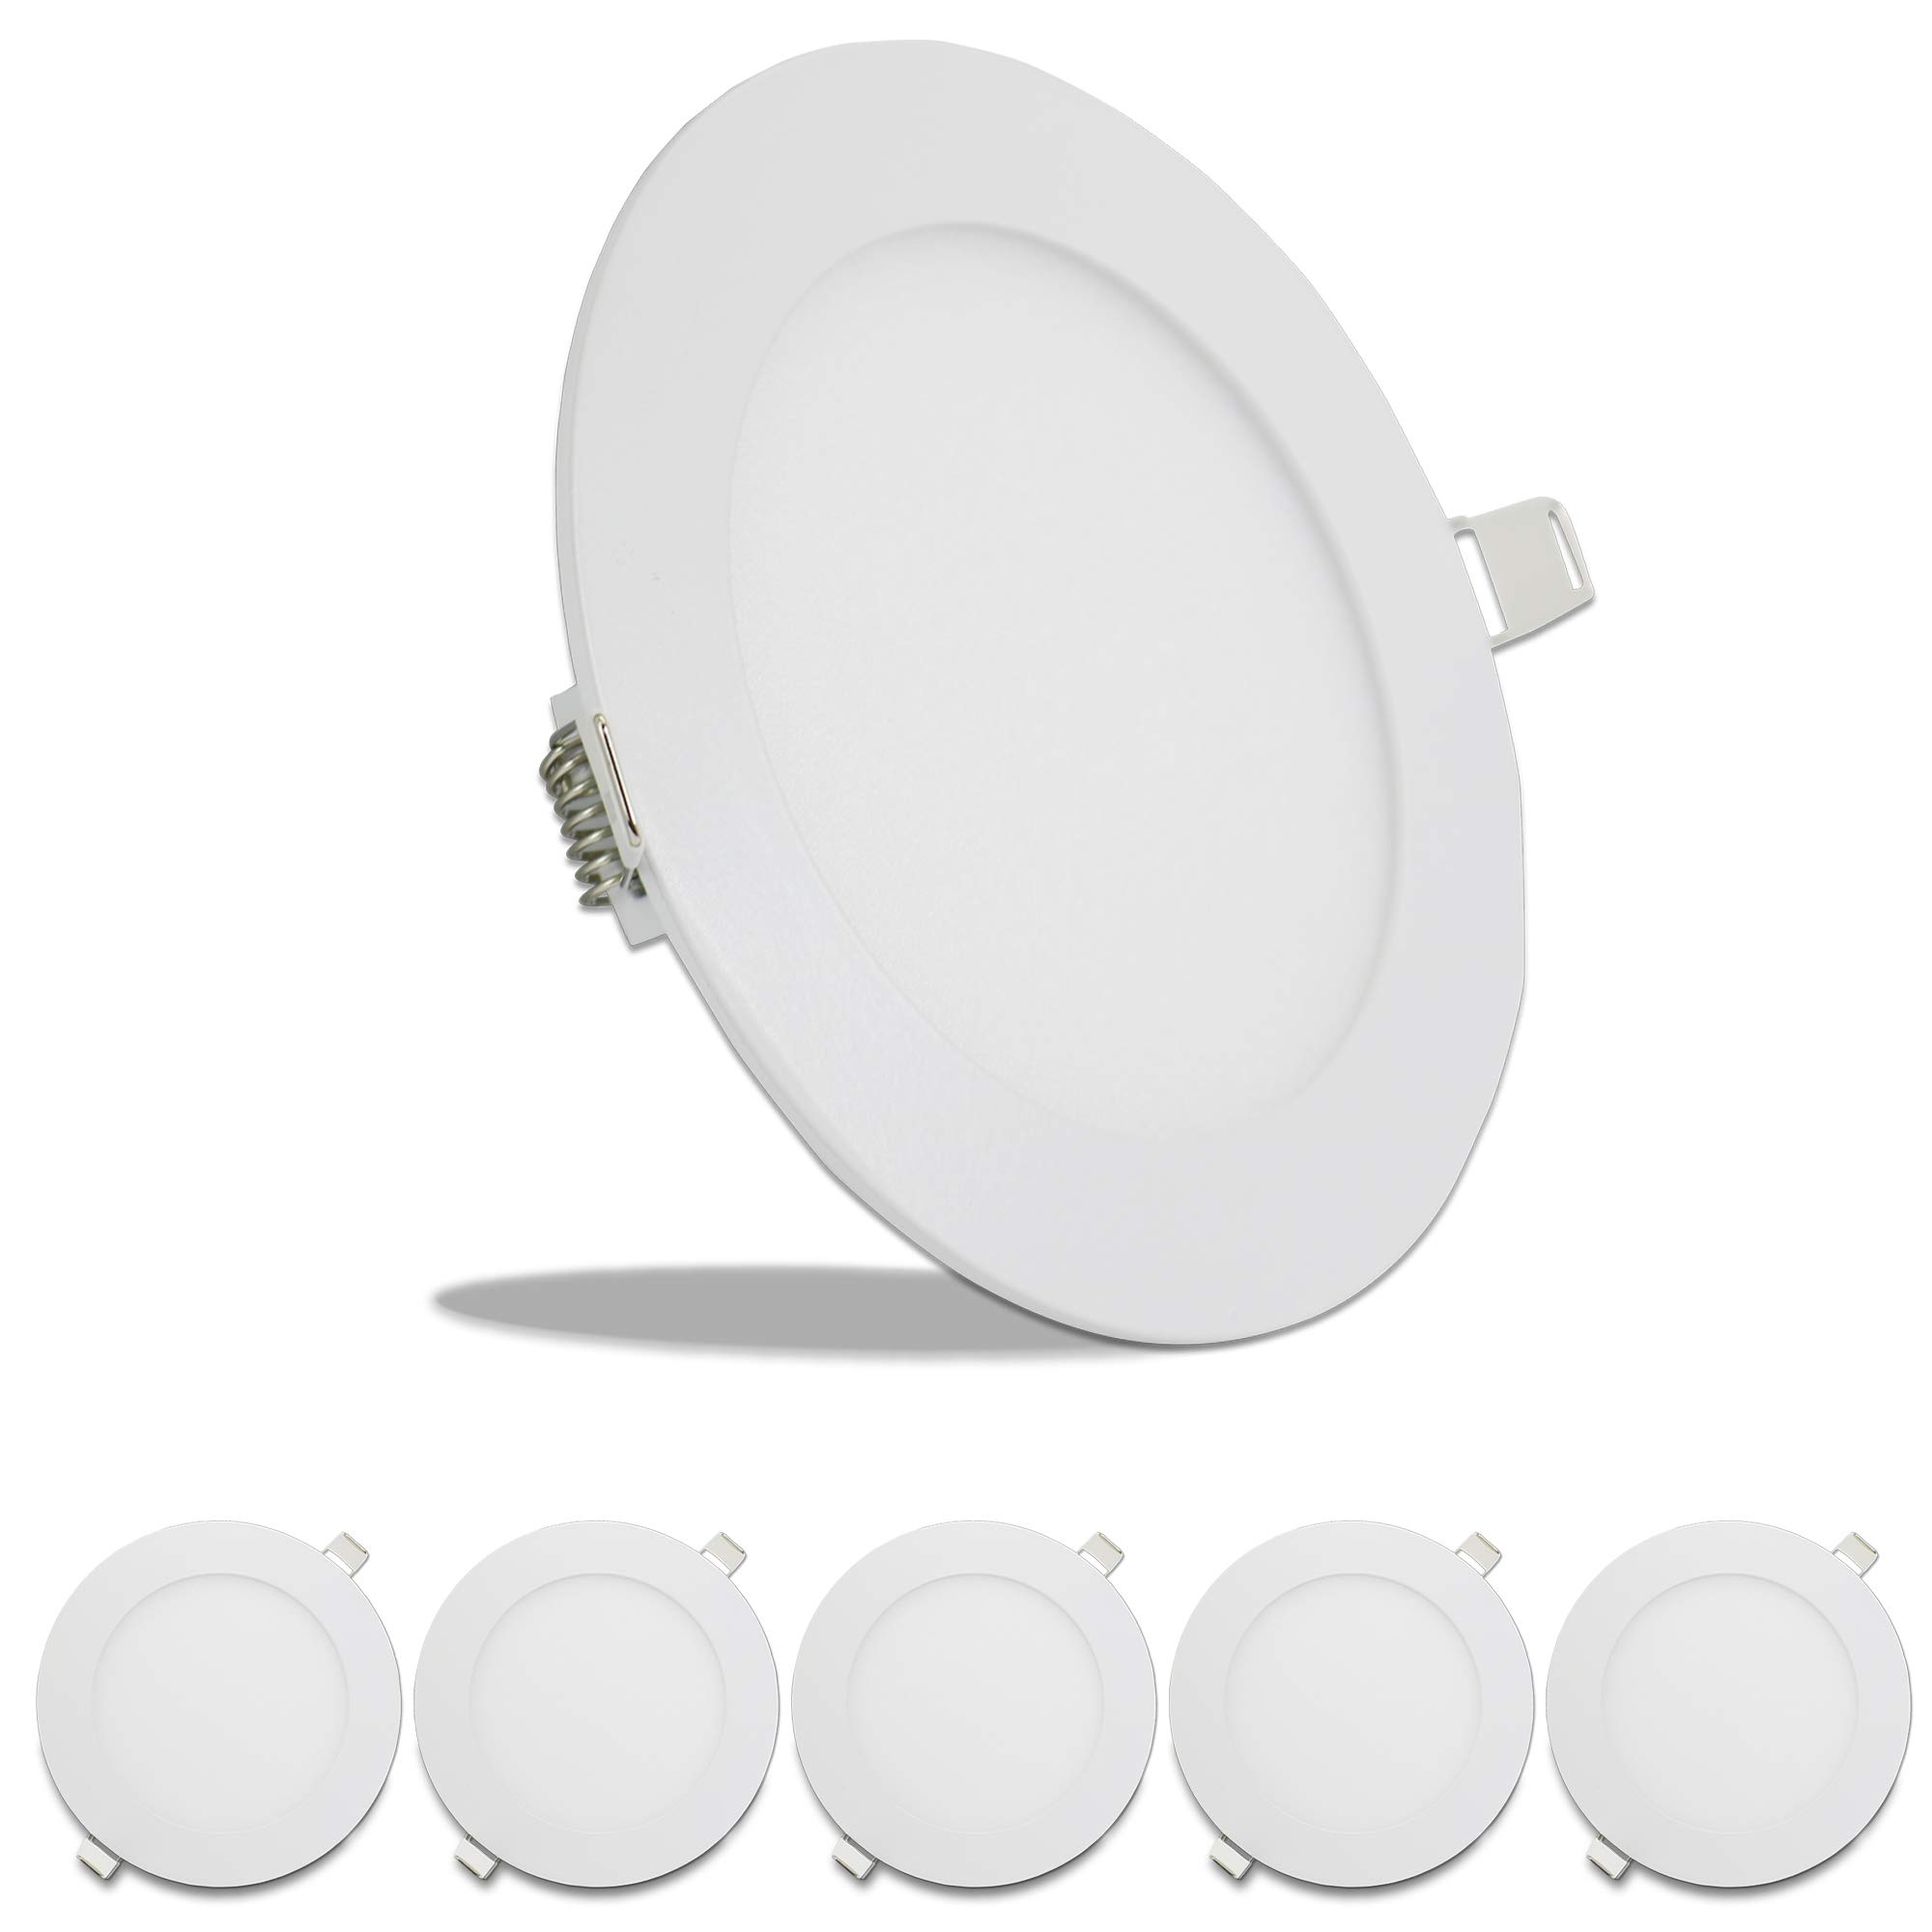 5 Pack Leisure LED RV Boat Recessed Ceiling Light 720